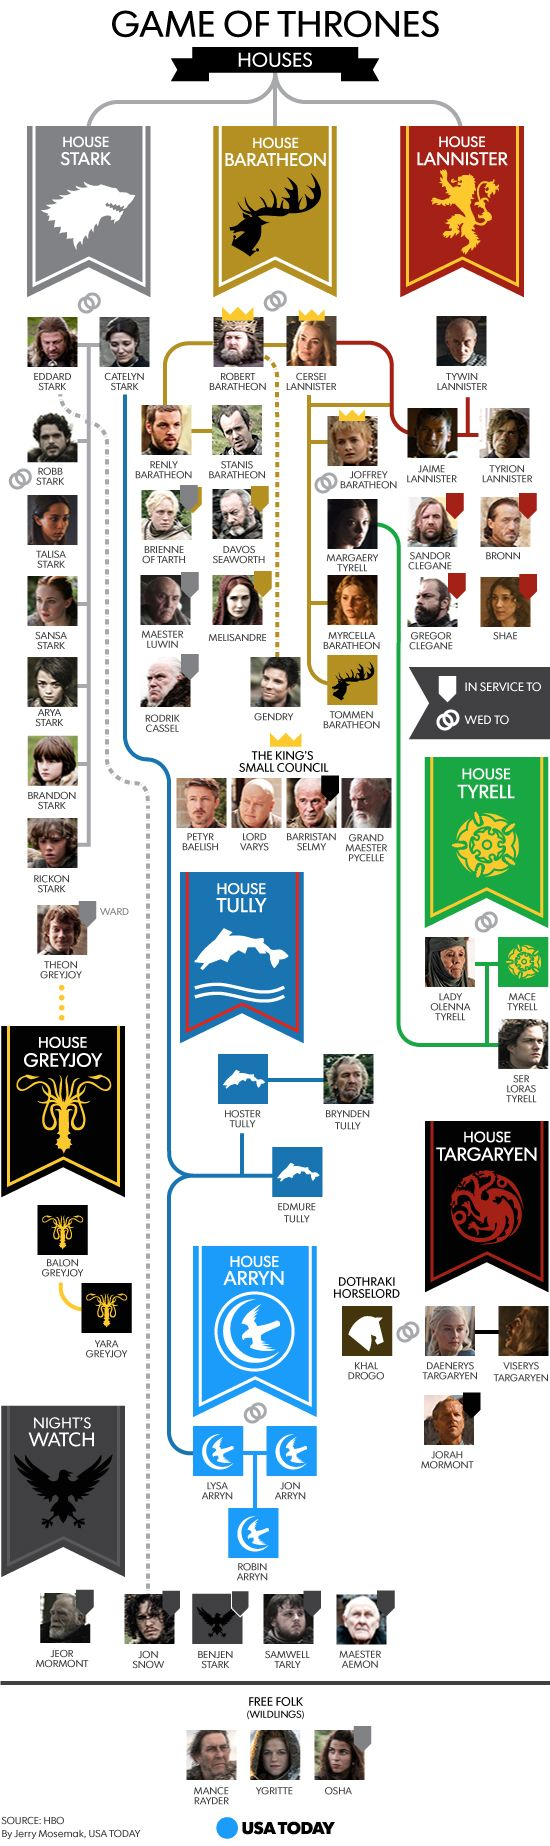 game of thrones family infographic